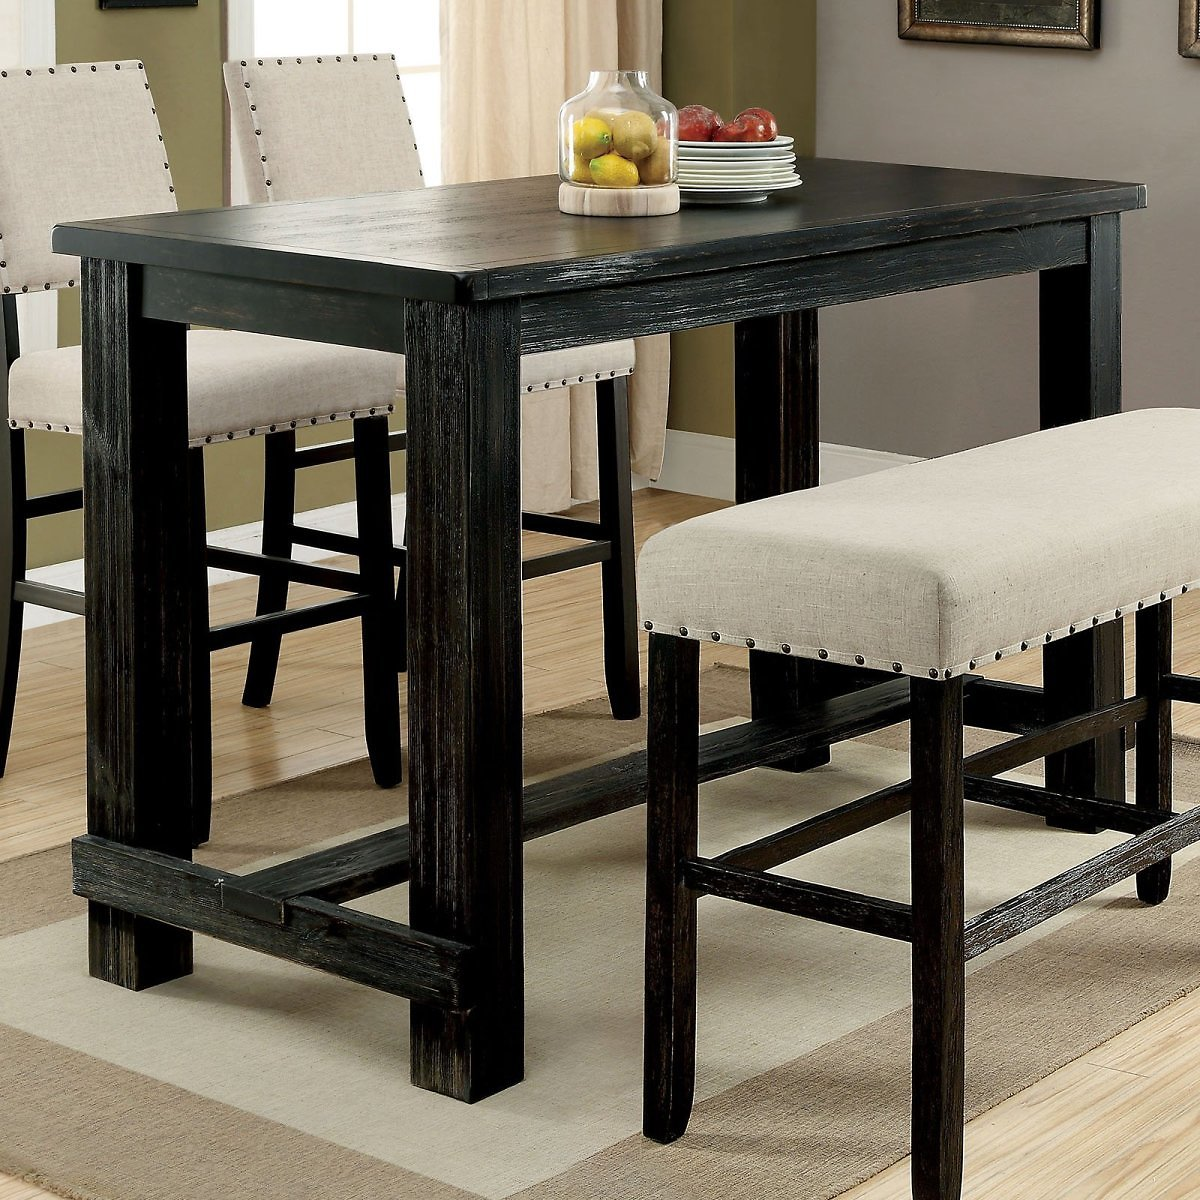 Furniture of America Helin II Bar Height Dining Table